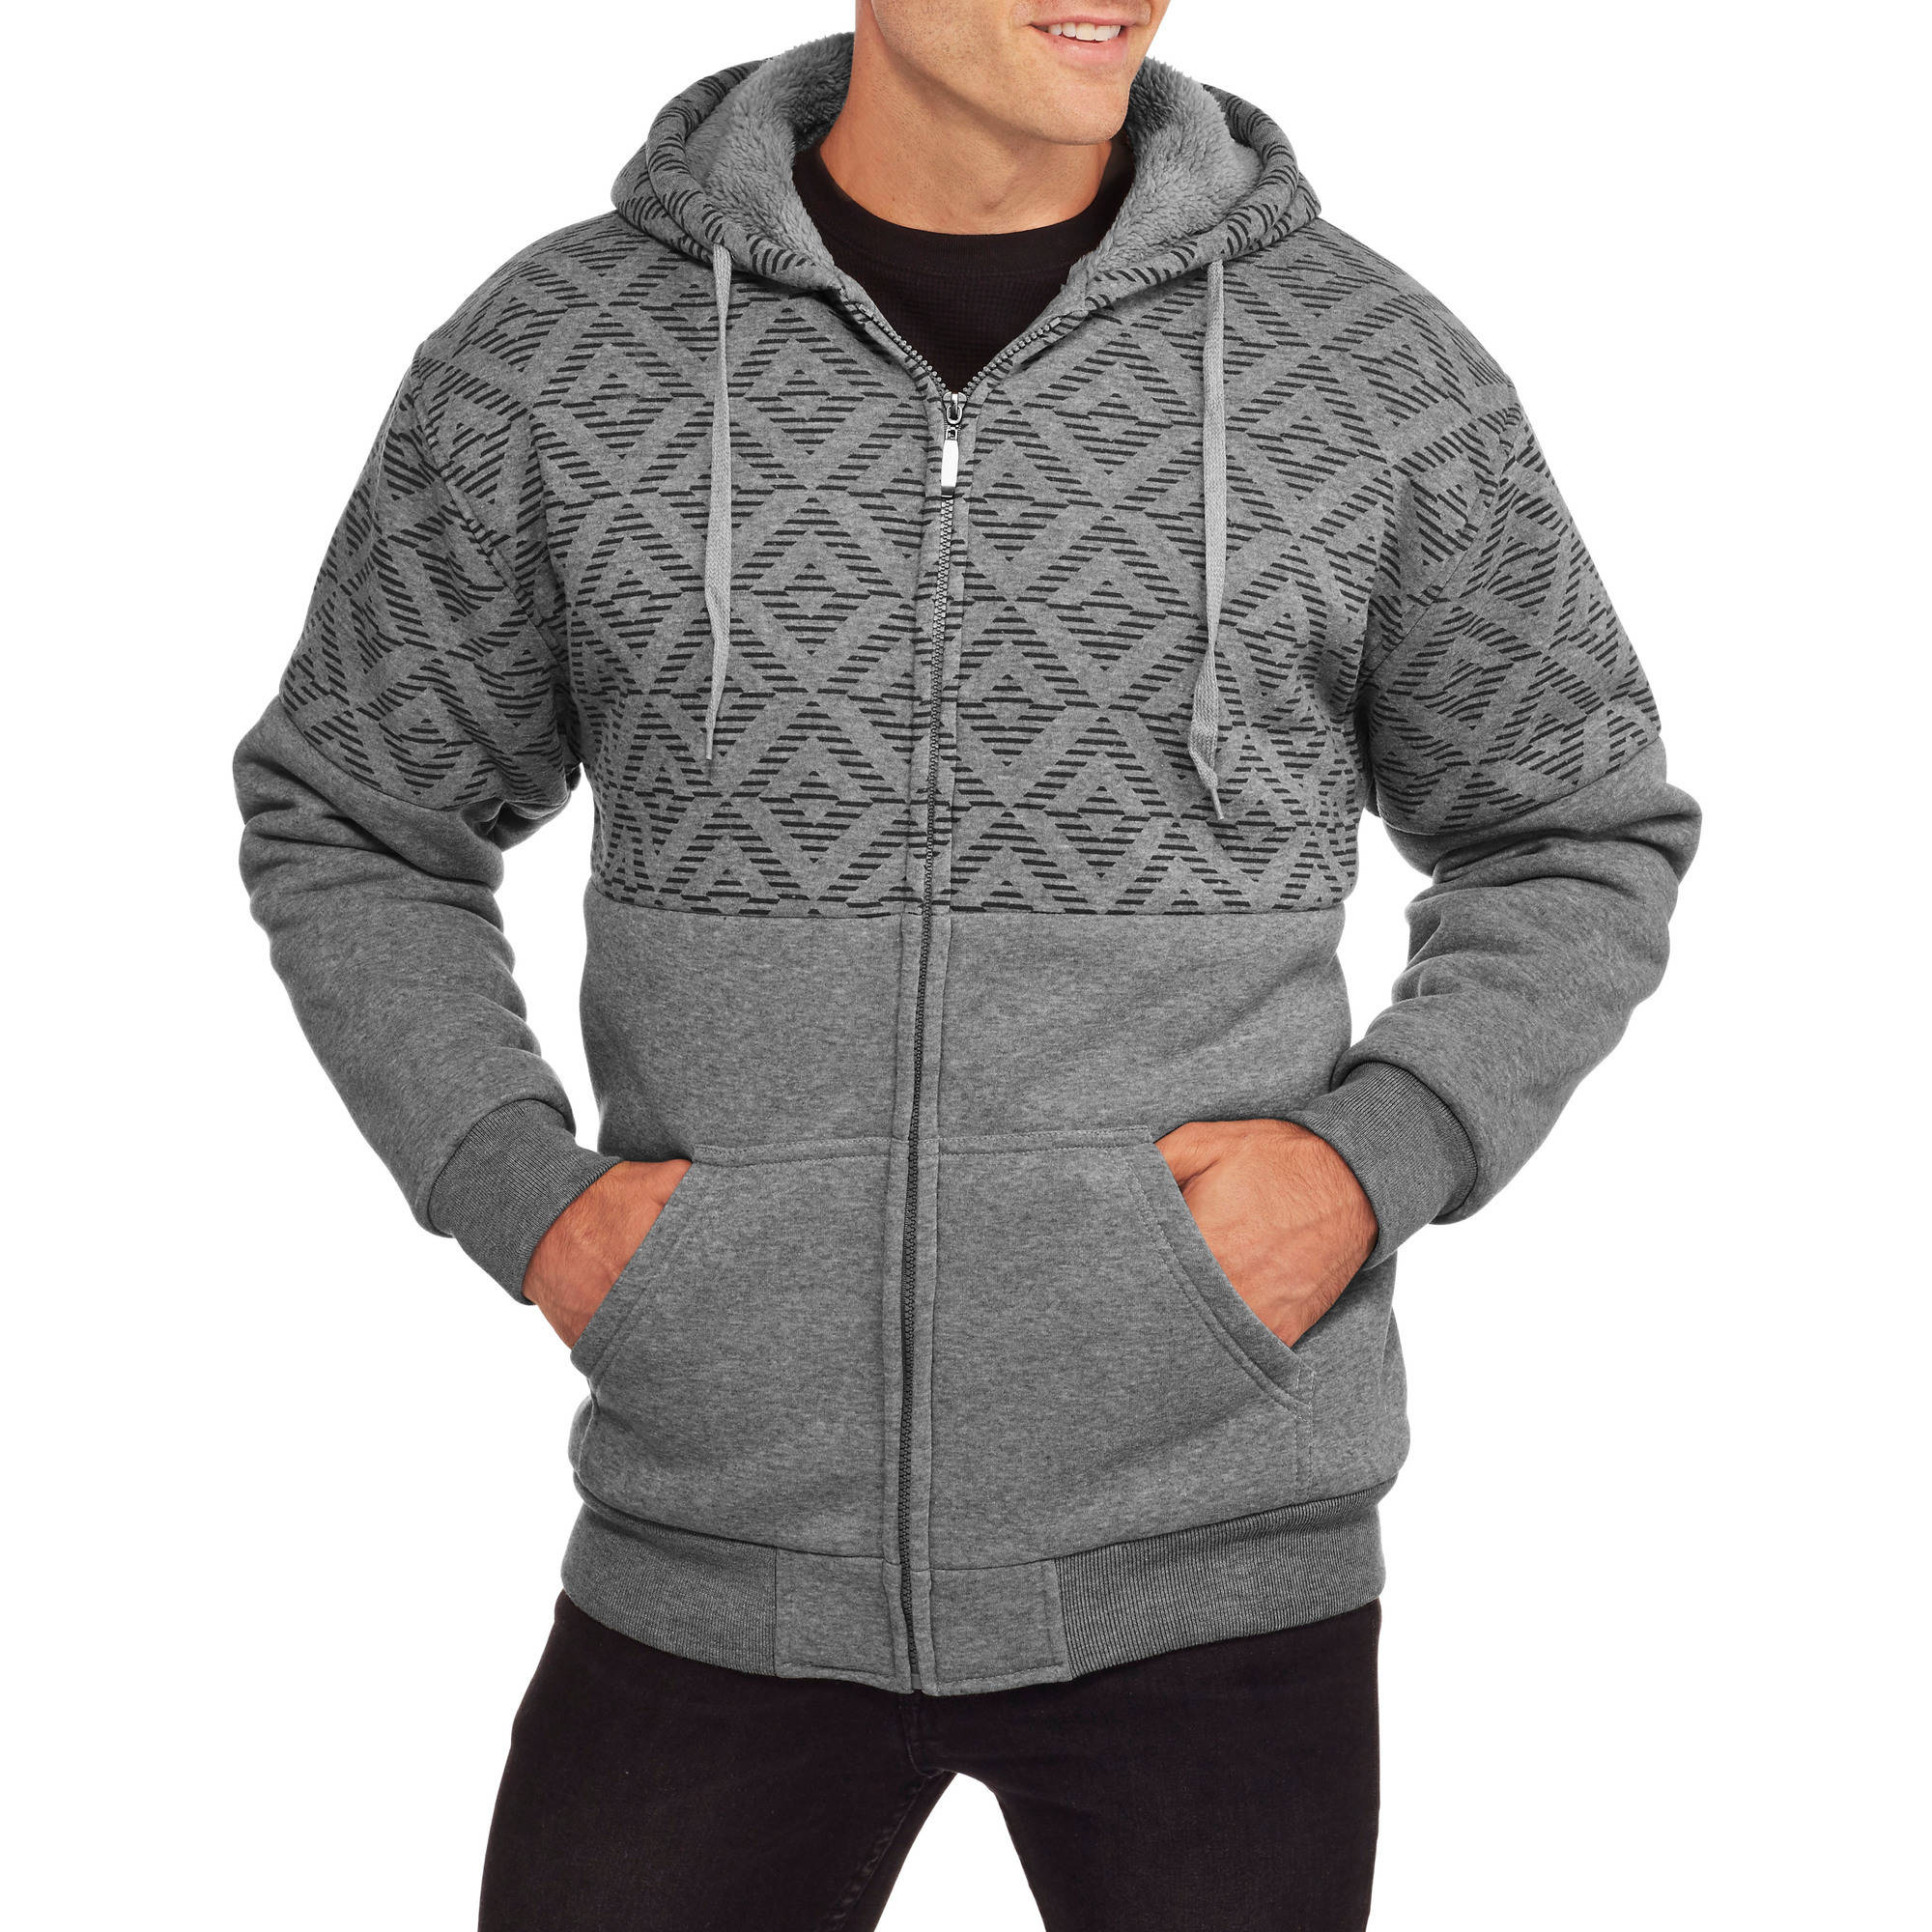 Climate Concepts Men's Print Fleece Sherpa Hoodie